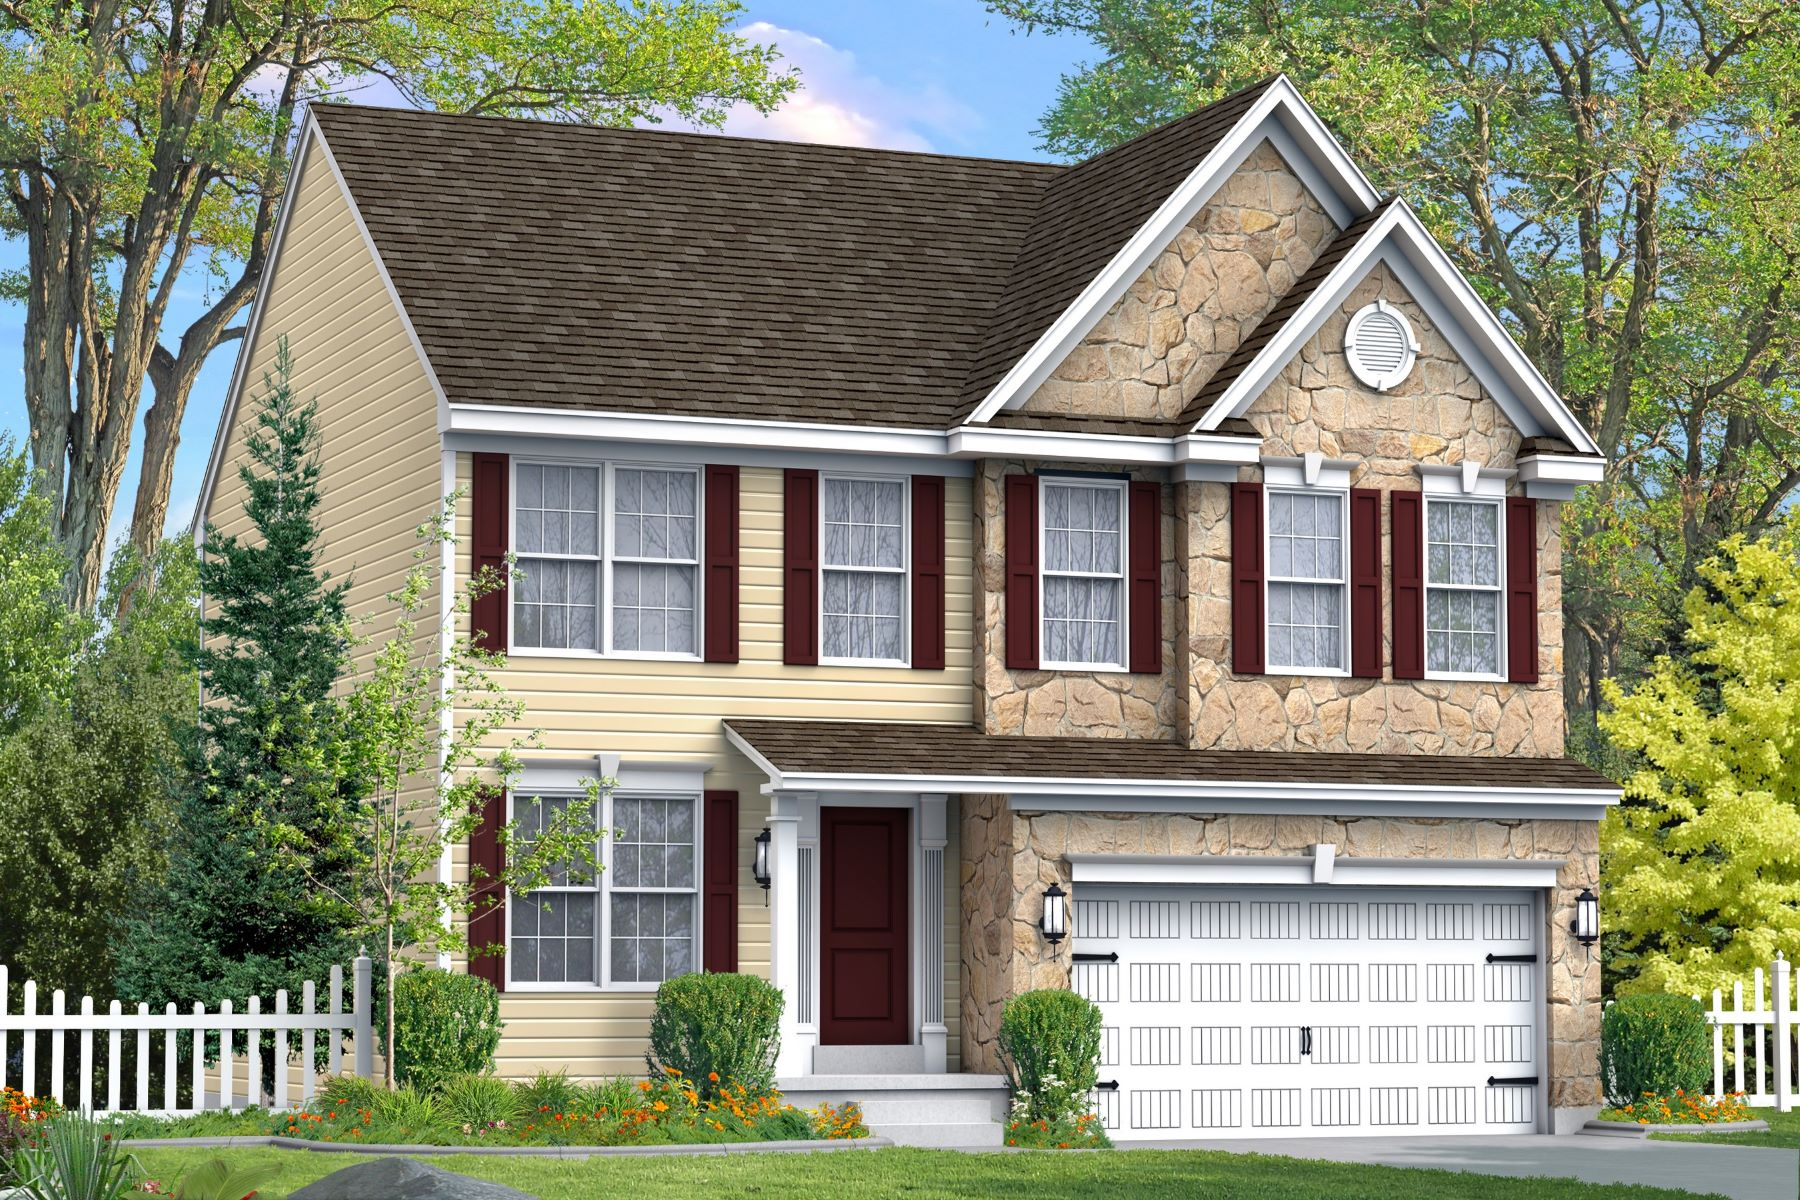 Single Family Homes for Sale at Briarcliff New Construction Colonial 536 Sandpiper Lane, New Cumberland, Pennsylvania 17070 United States